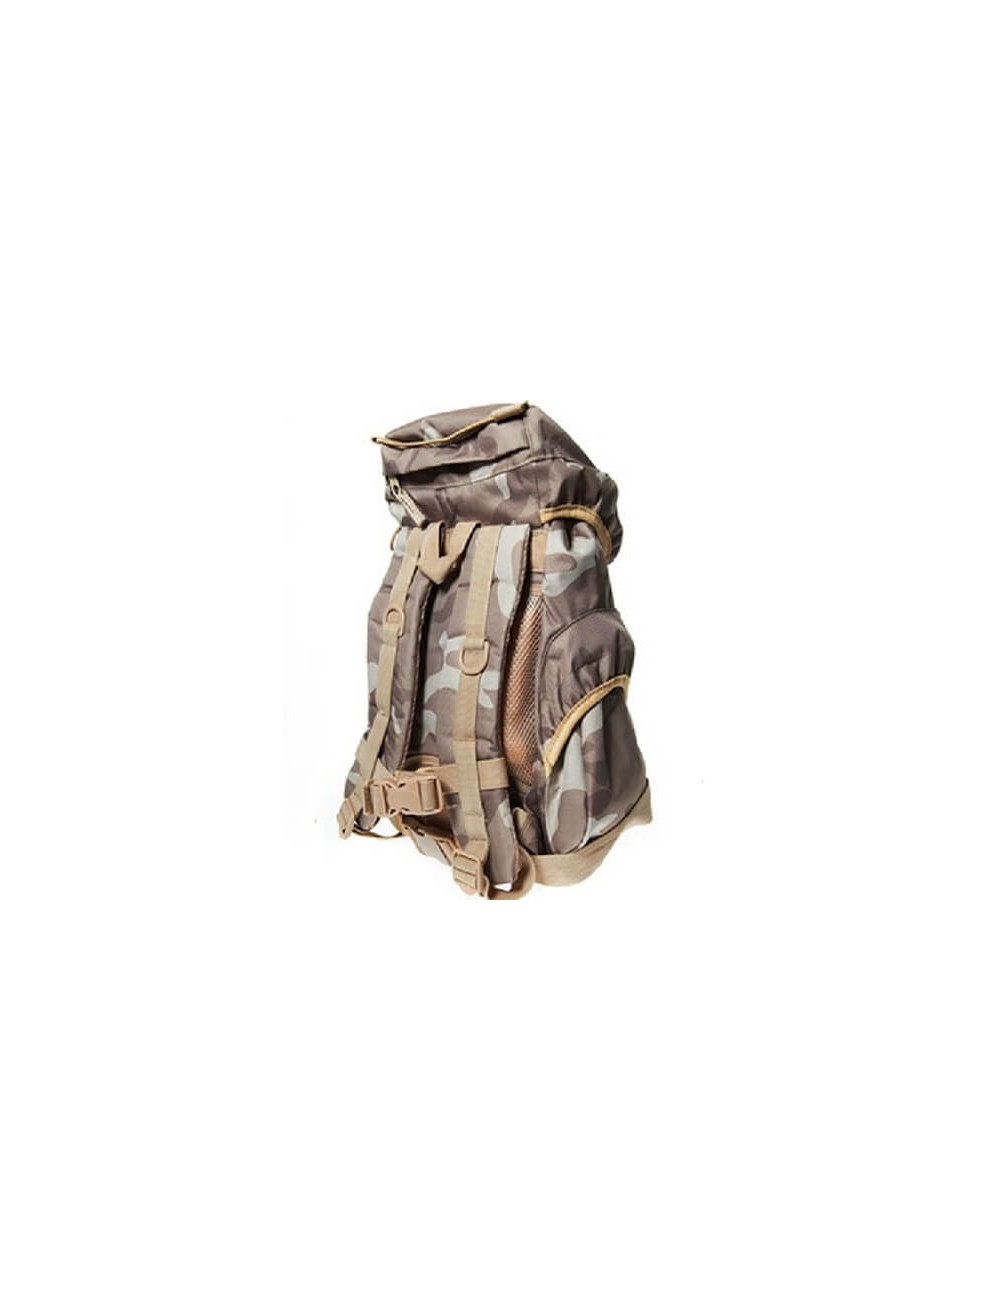 Fostex Recon Backpack 25 litre - Desert